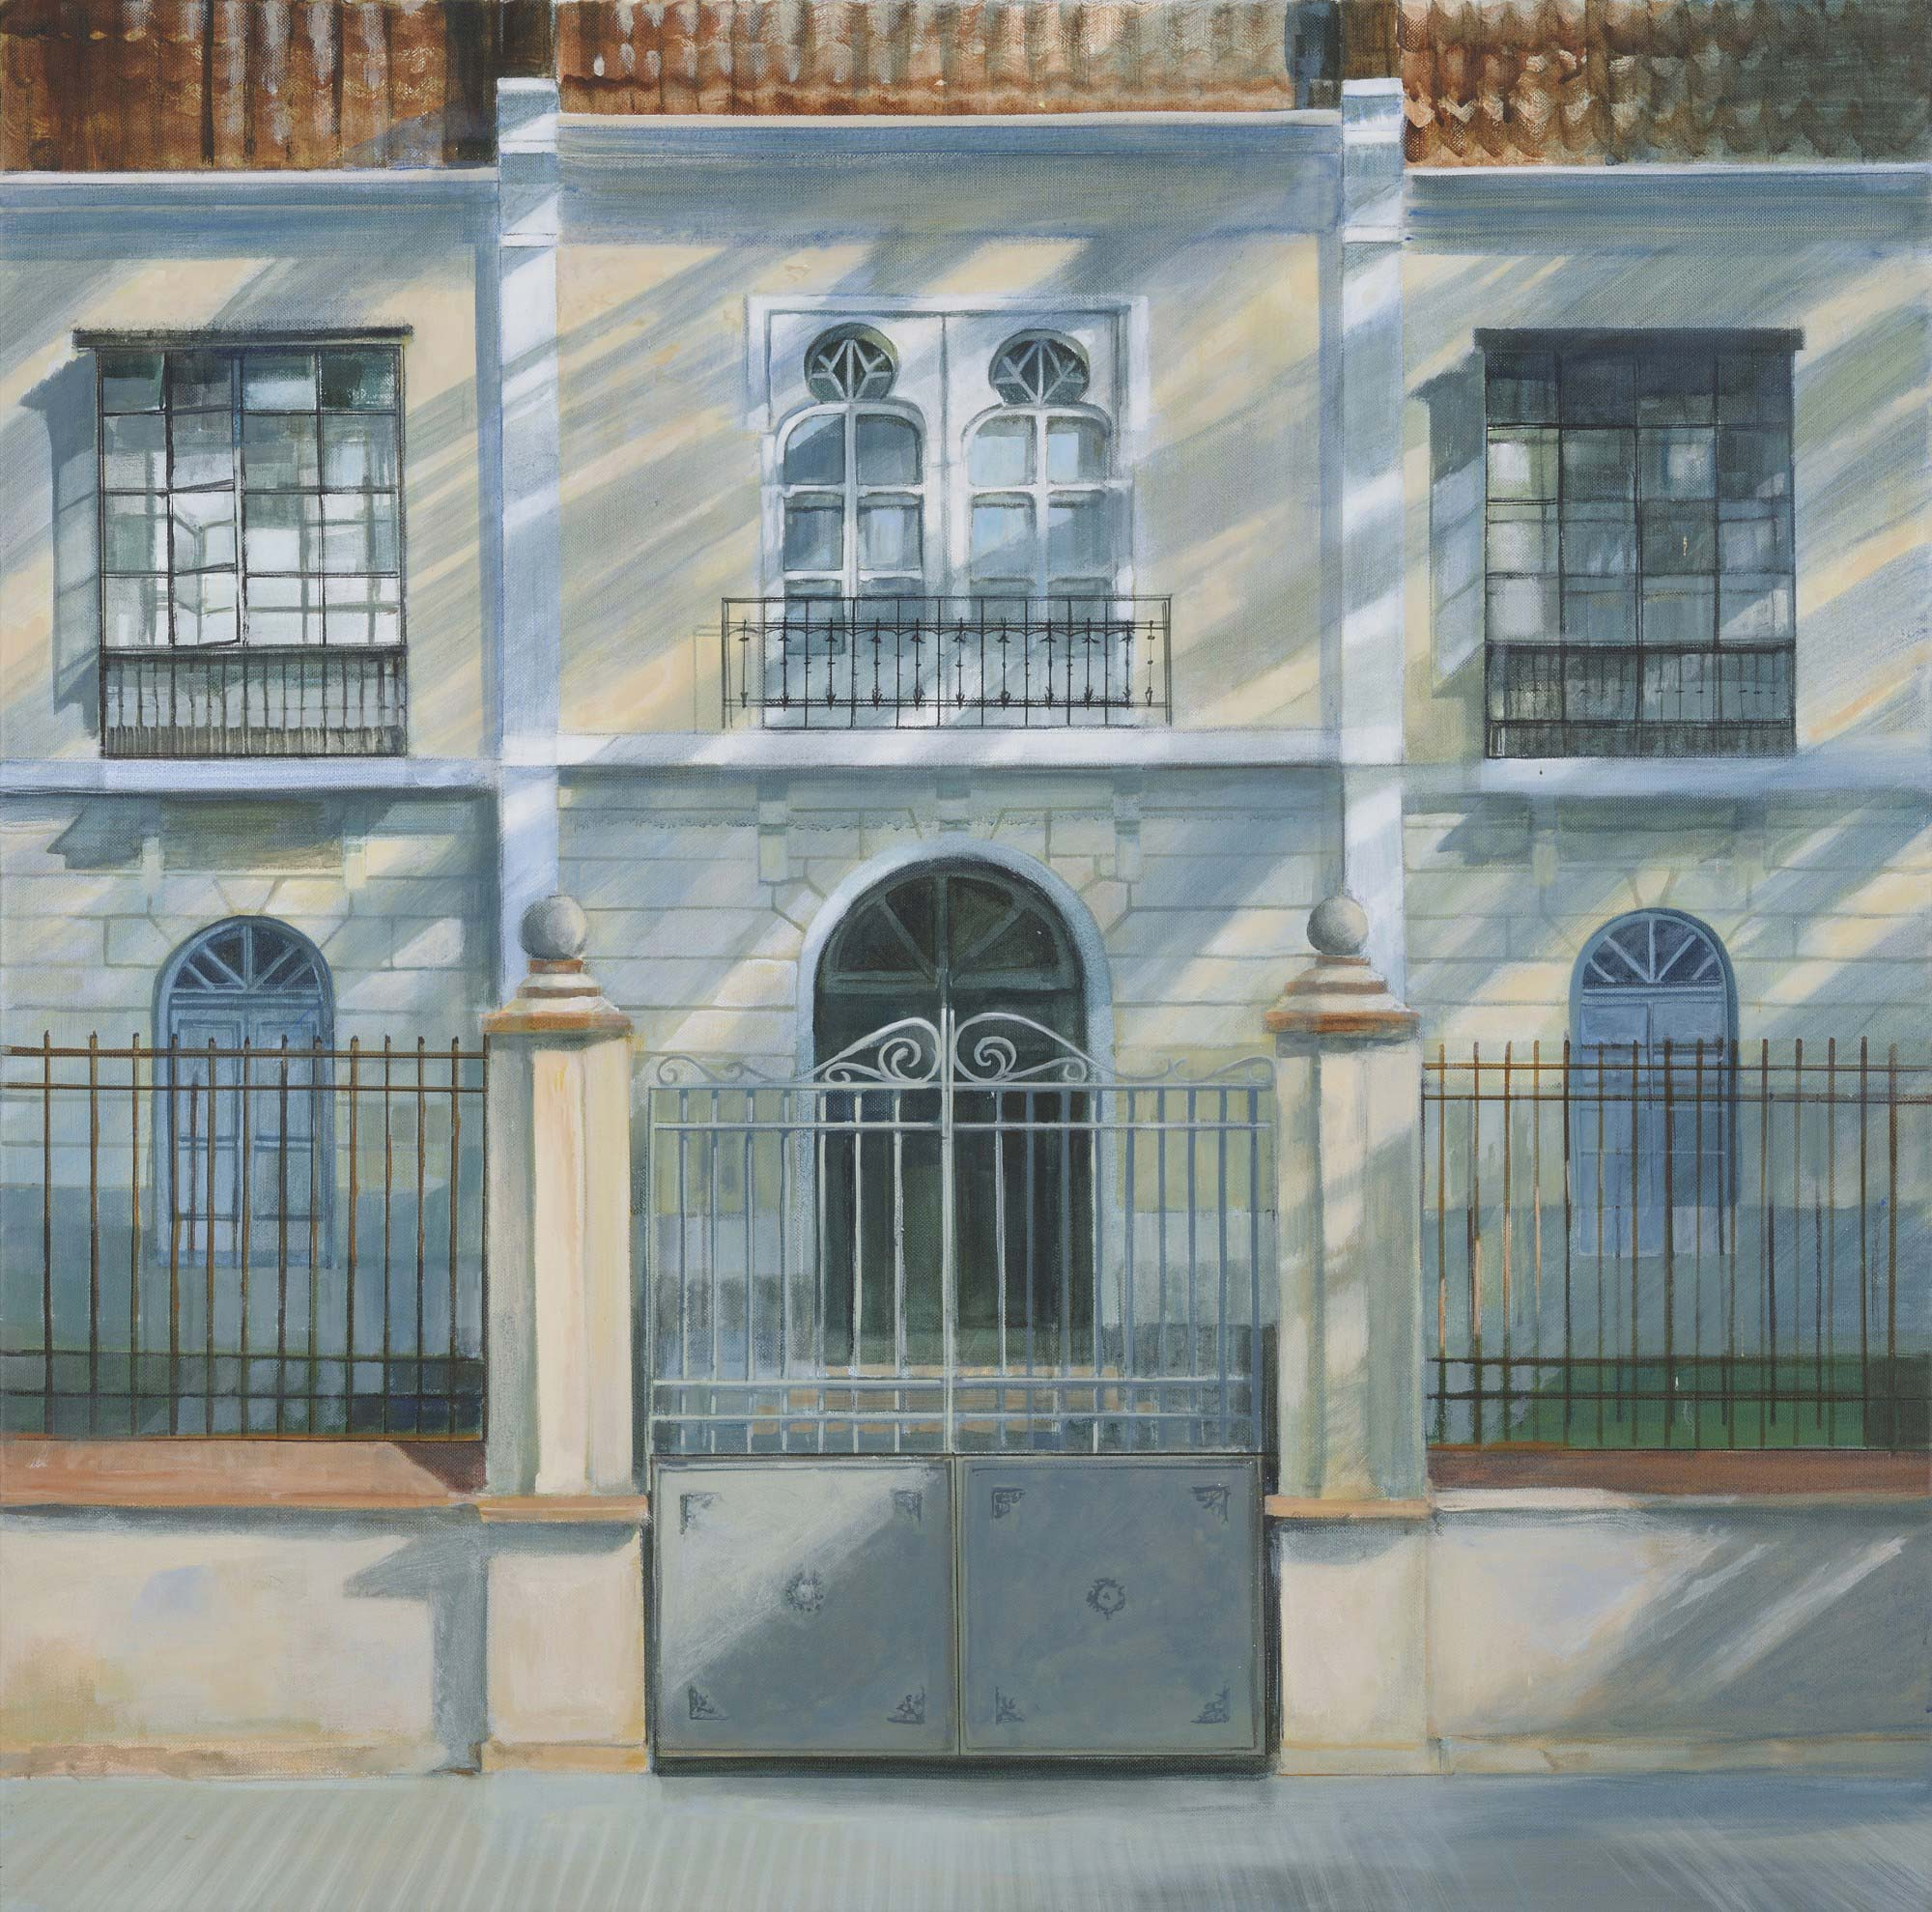 Building in Seville by Rupert Brown